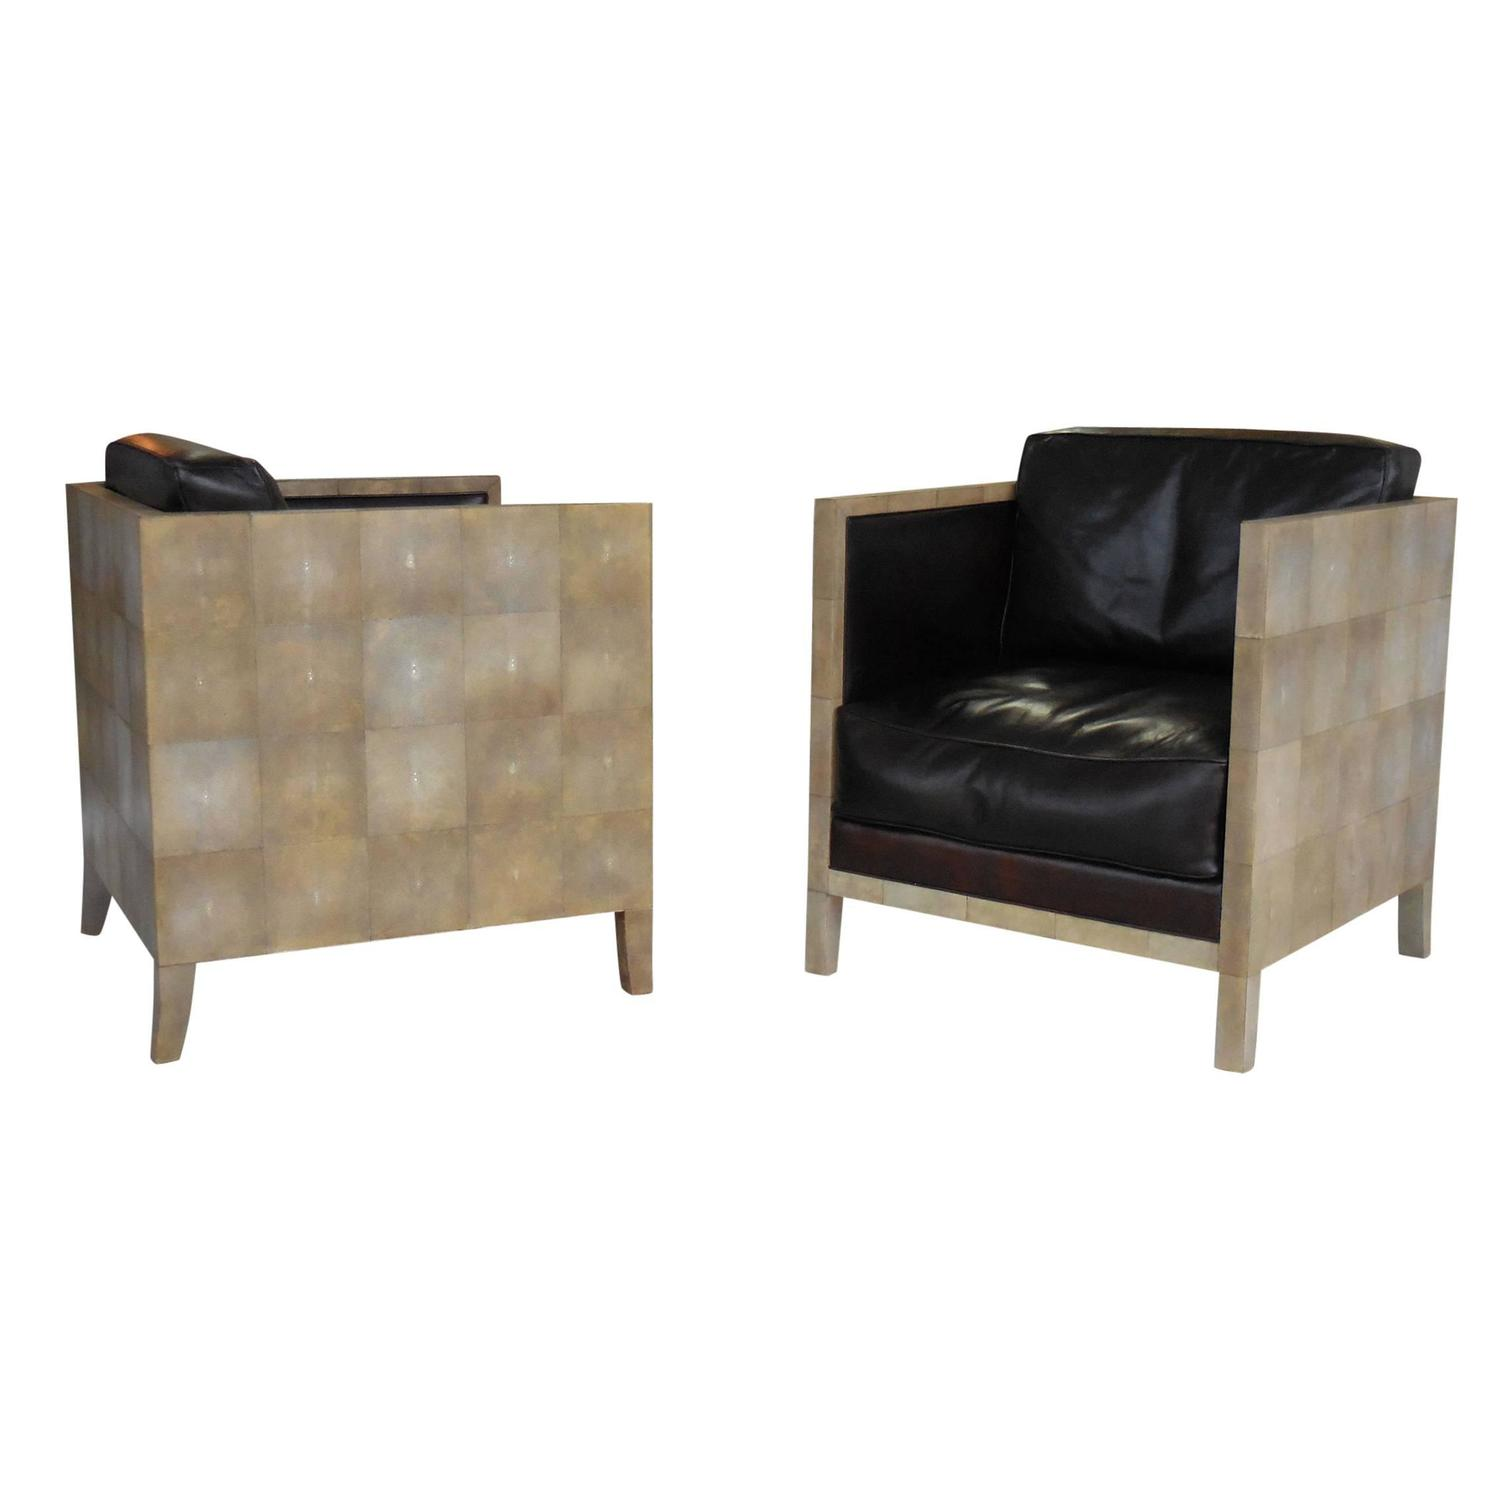 Pair of Jean Michel Frank Style Shagreen Club Chairs at 1stdibs